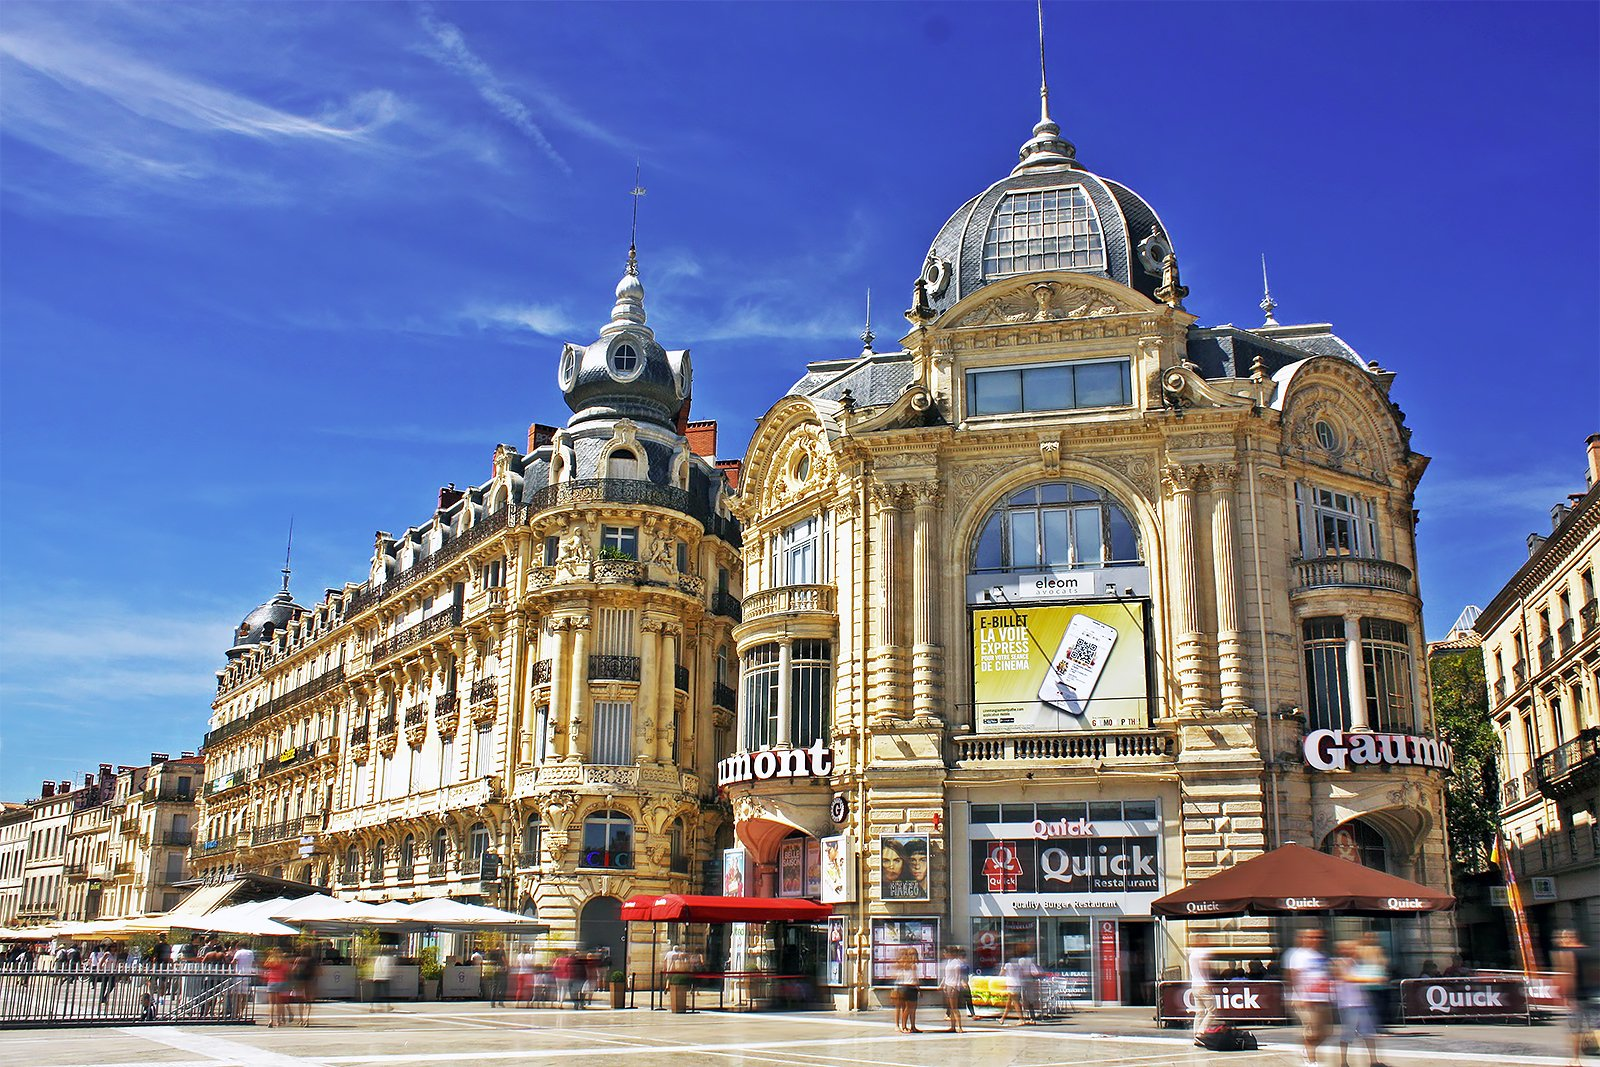 11 Best Things to Do in Montpellier - What is Montpellier ...